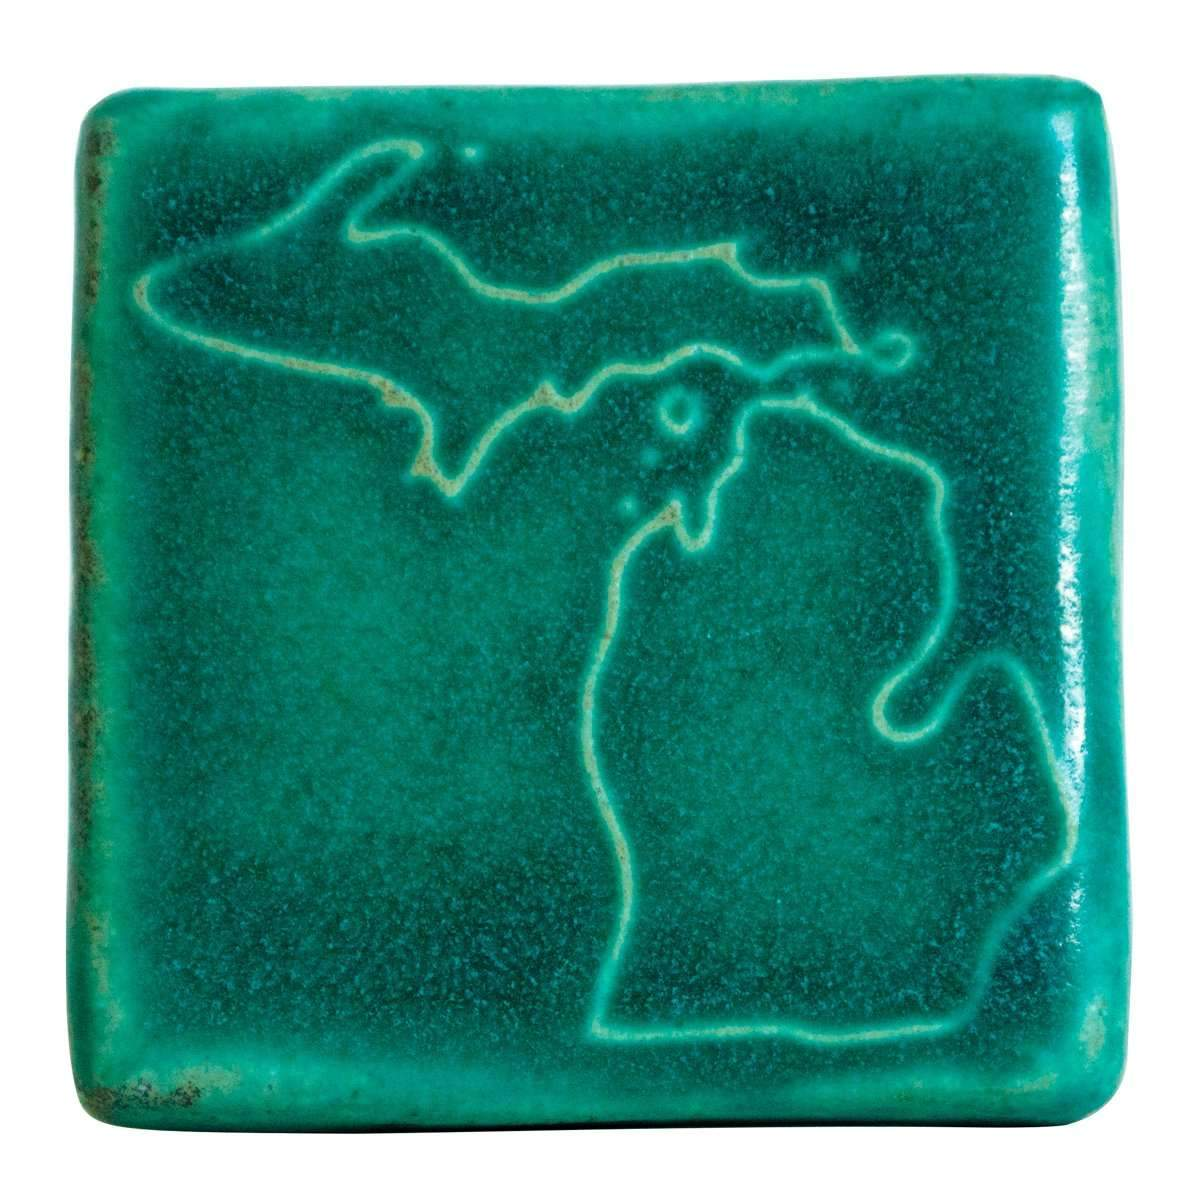 3x3 Michigan Pewabic Tile - Pewabic Blue - Pure Detroit